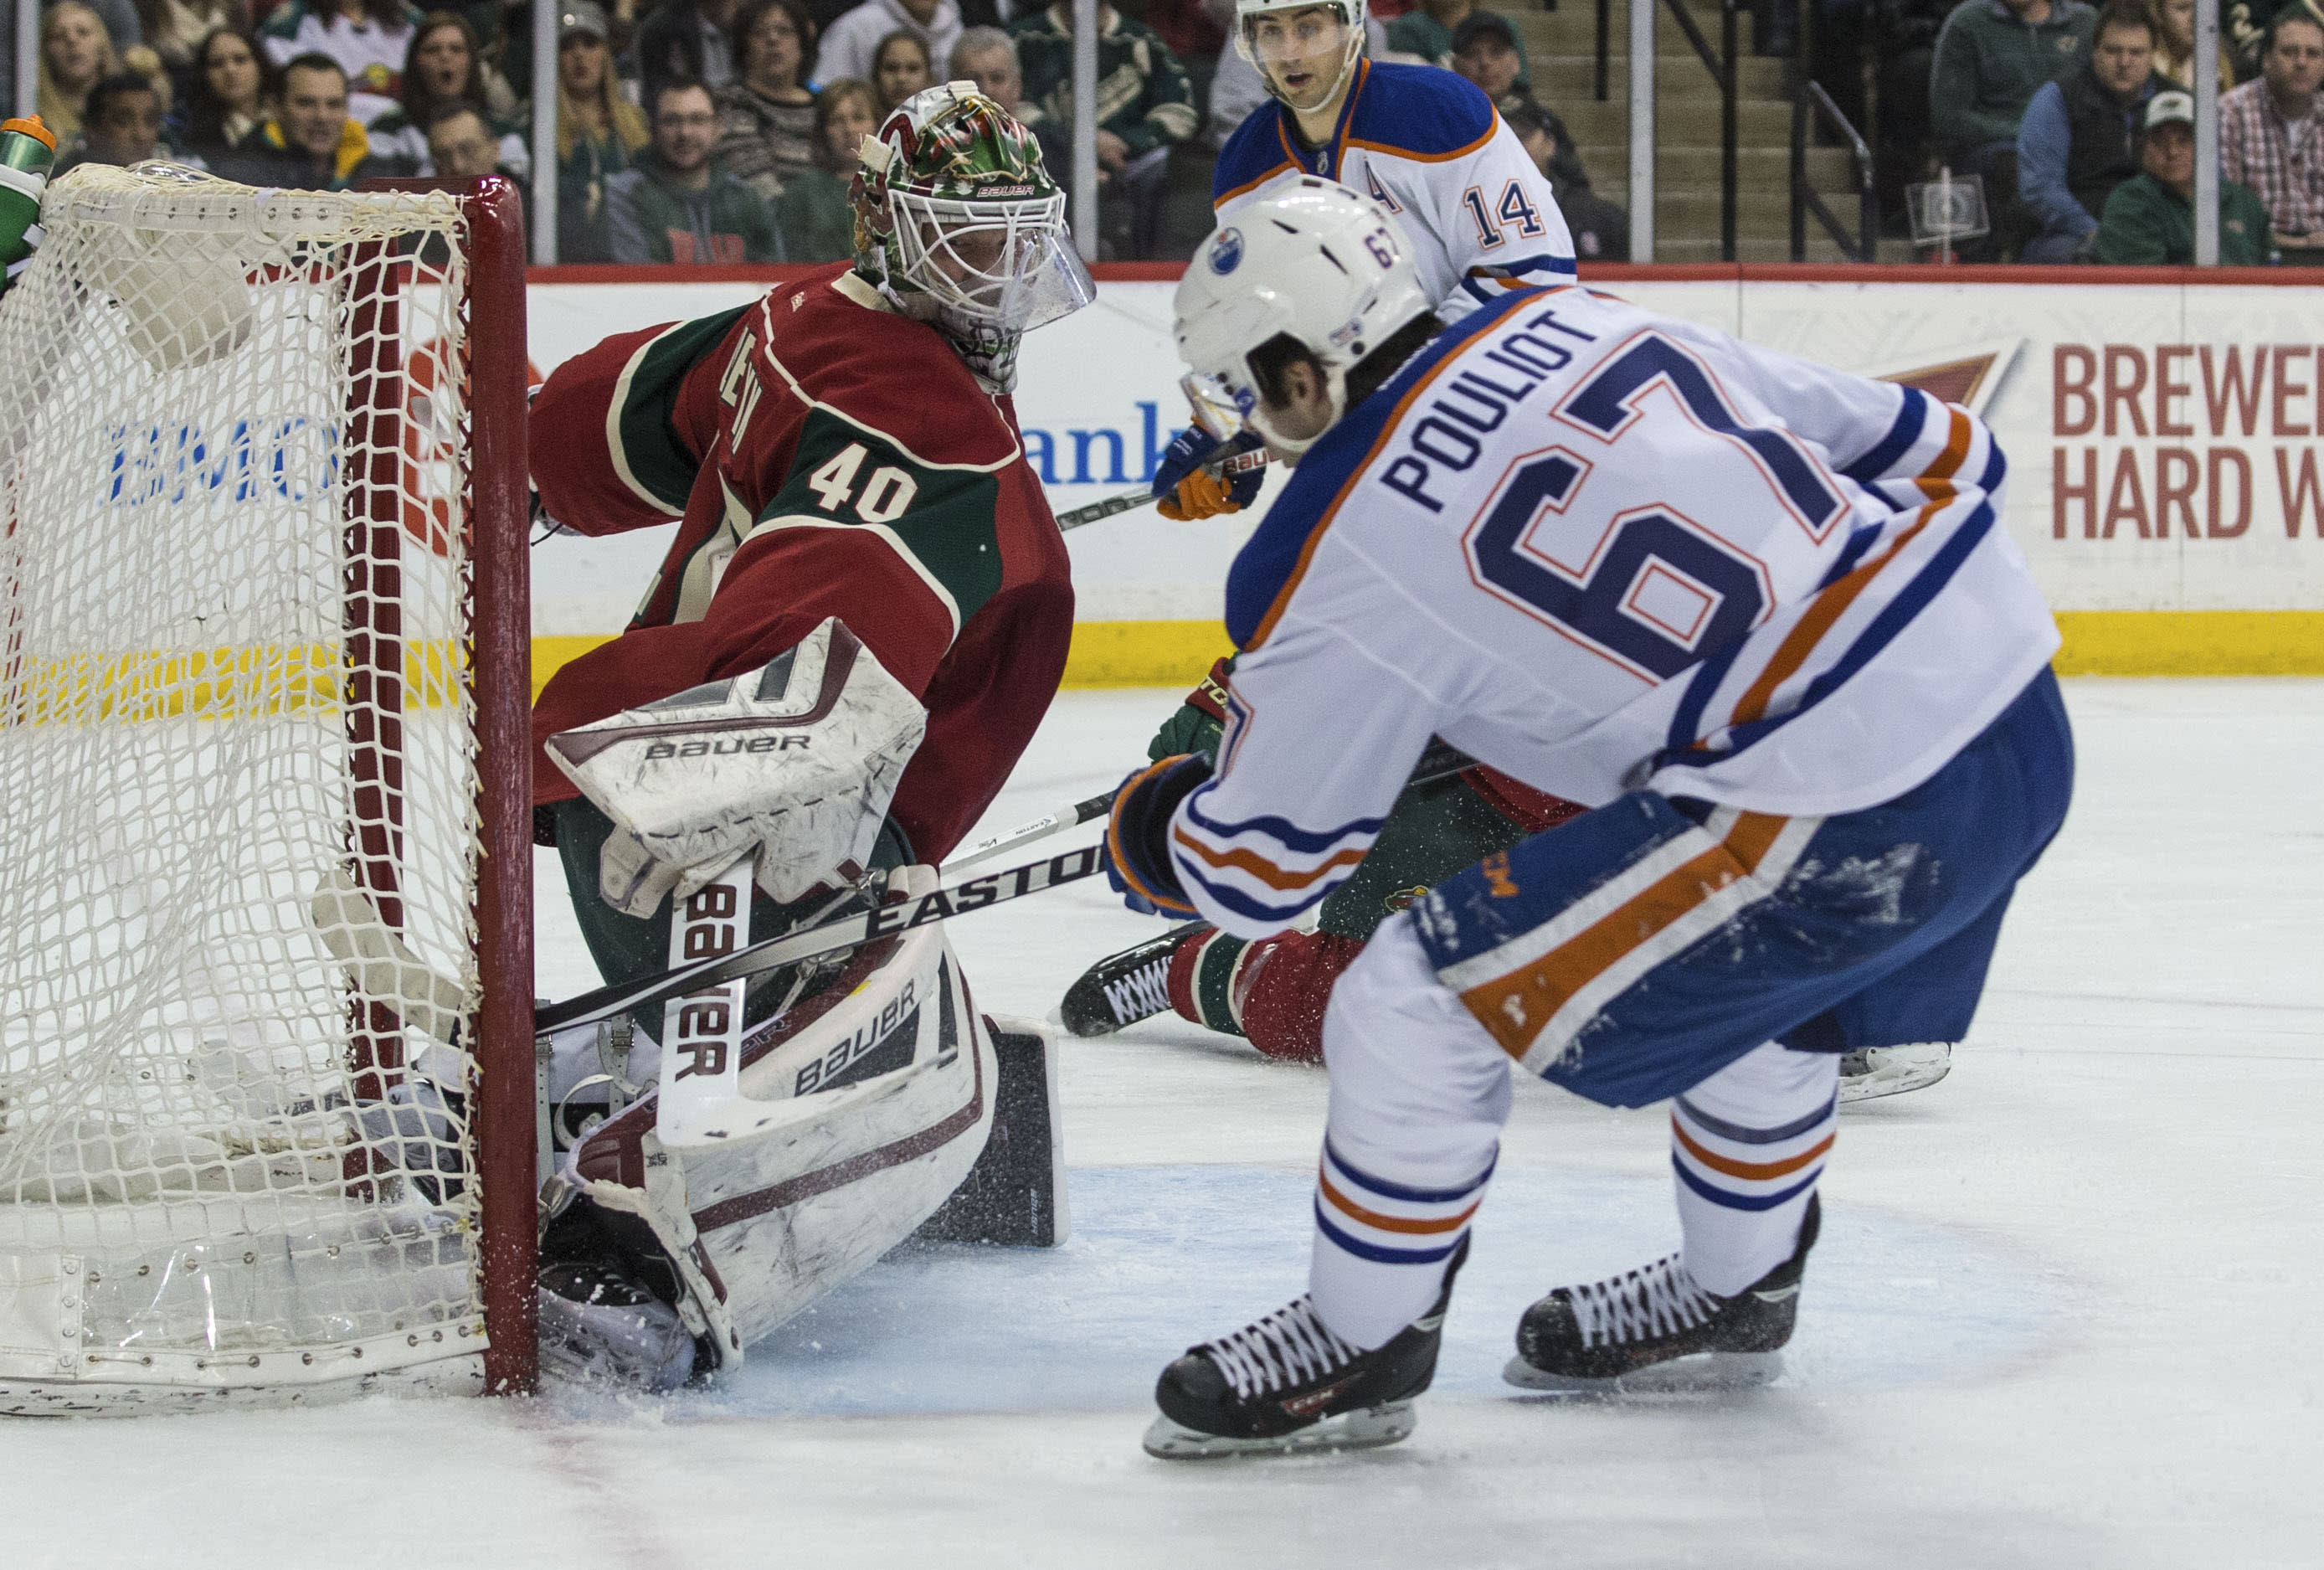 Wild finds system stability with stronger goaltending